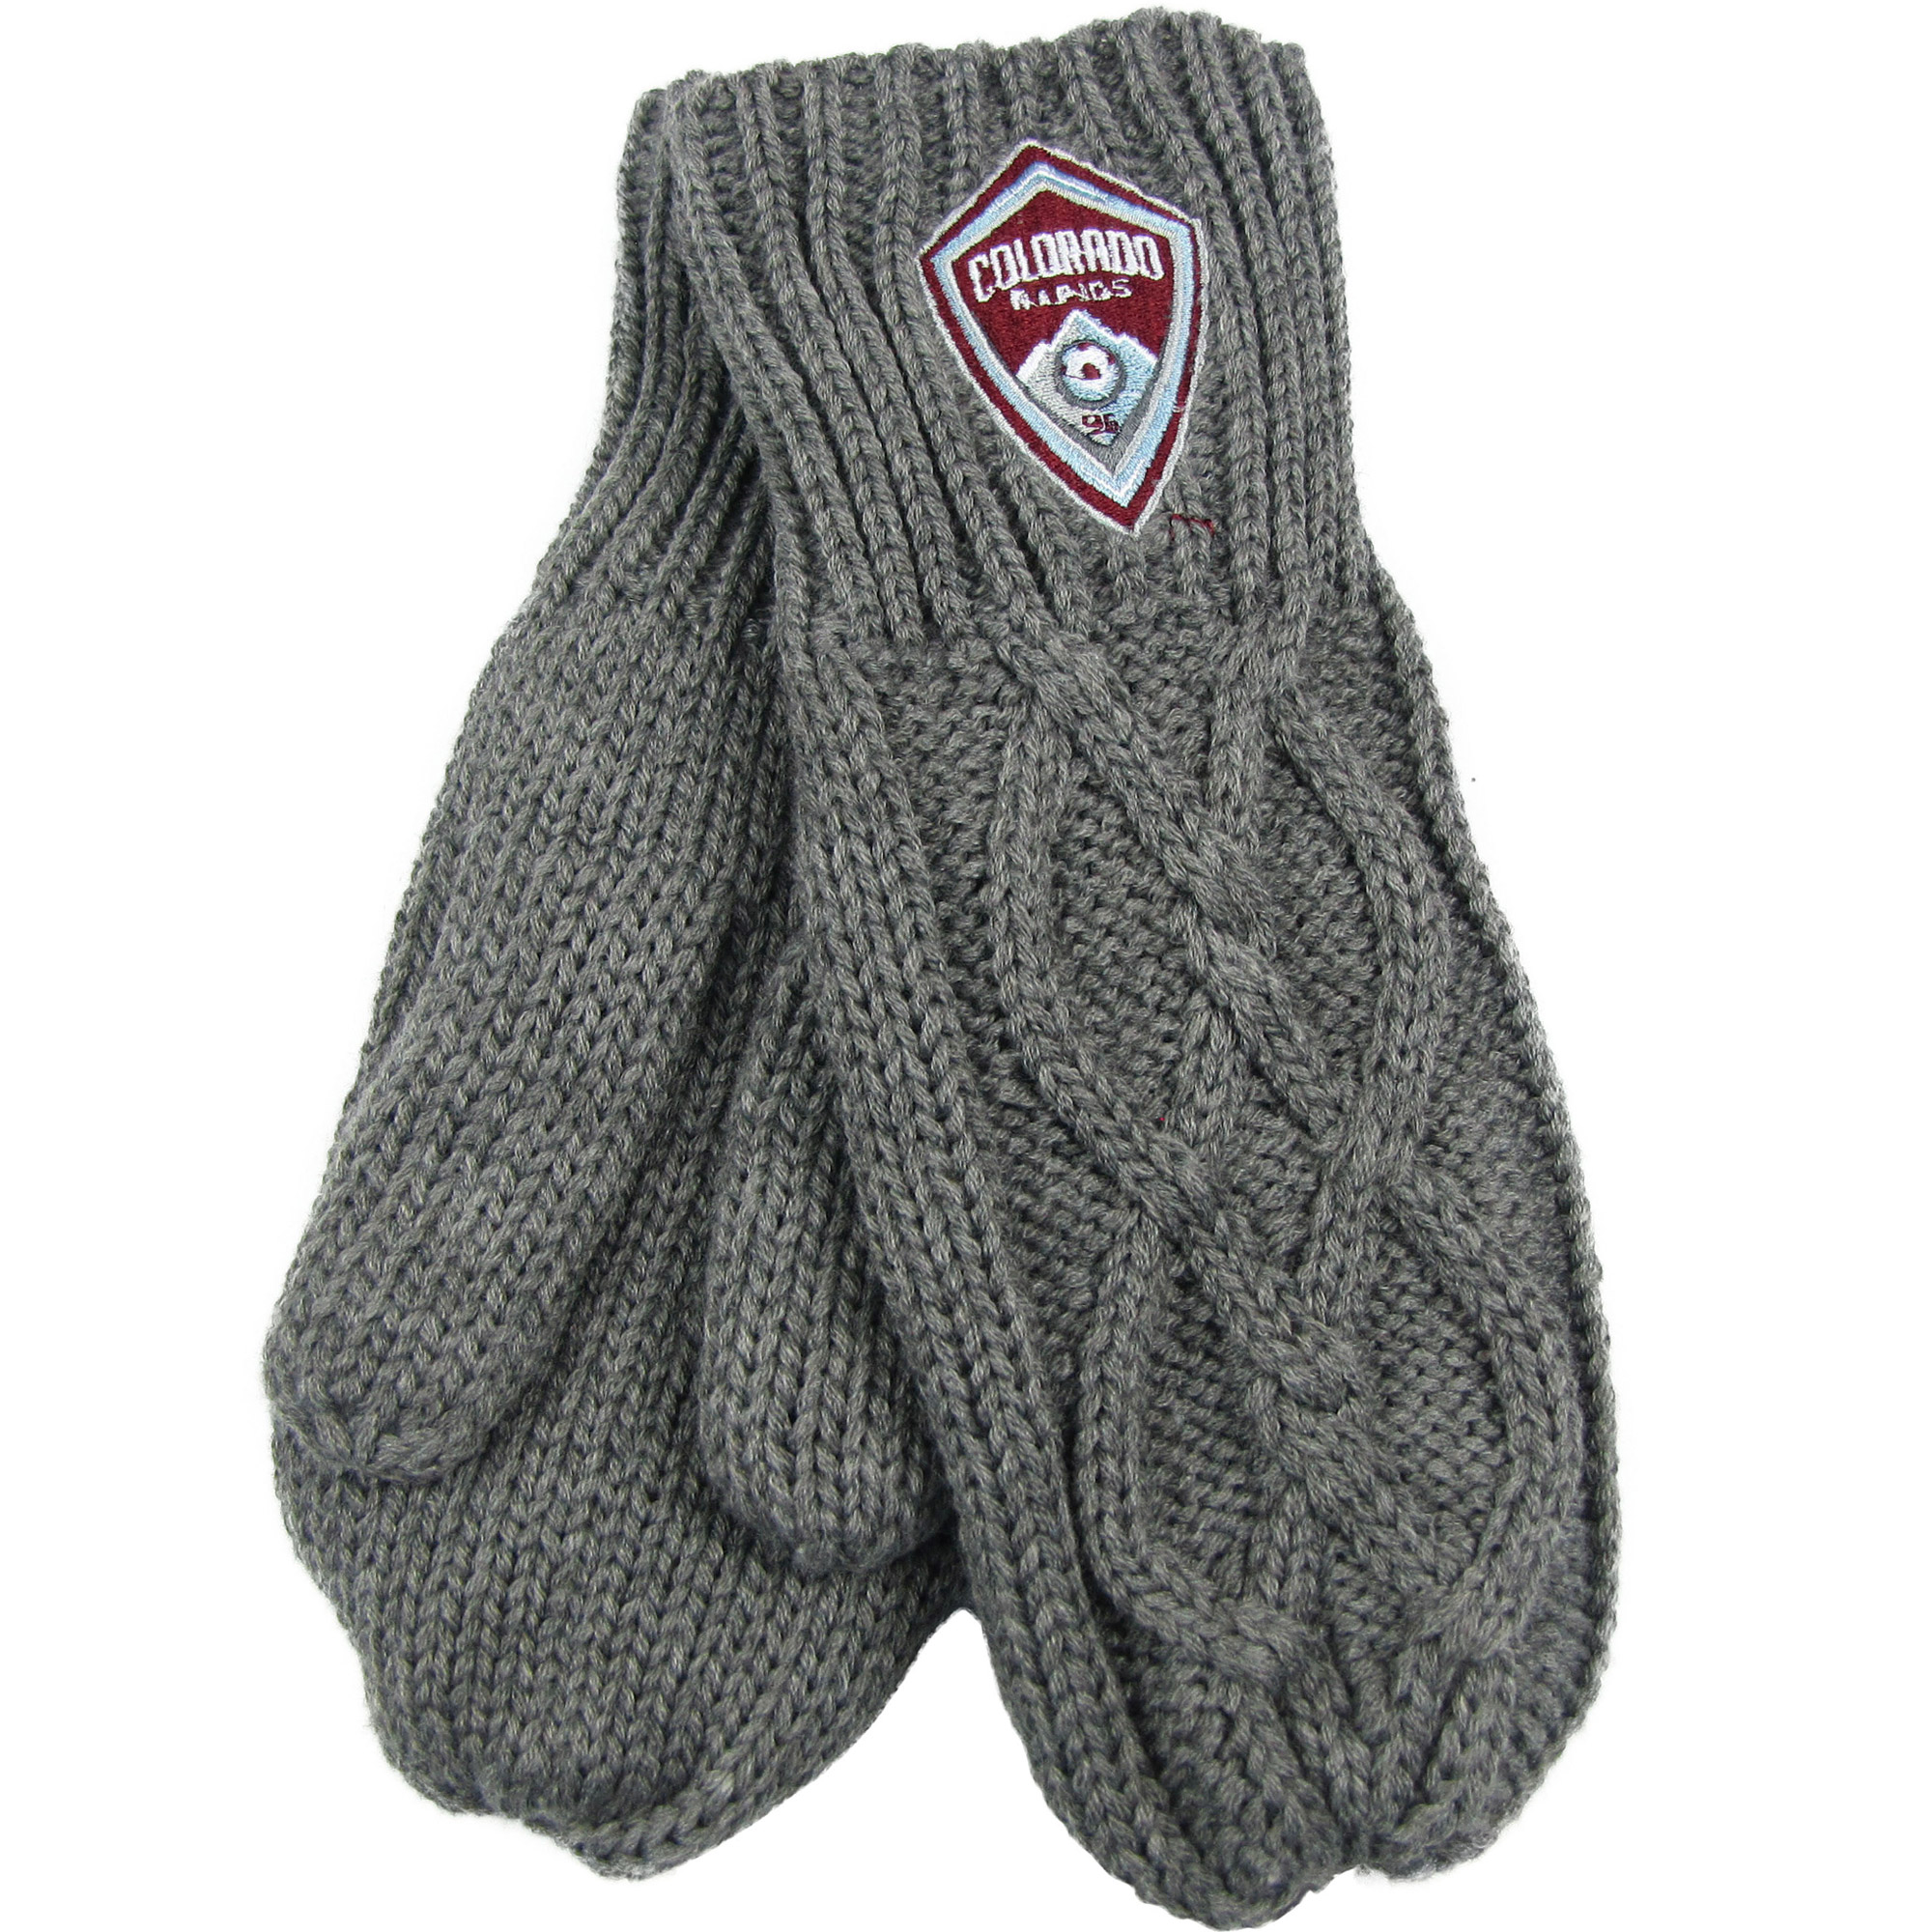 Colorado Rapids ZooZatz Women's Cable Knit Mittens - Charcoal - No Size